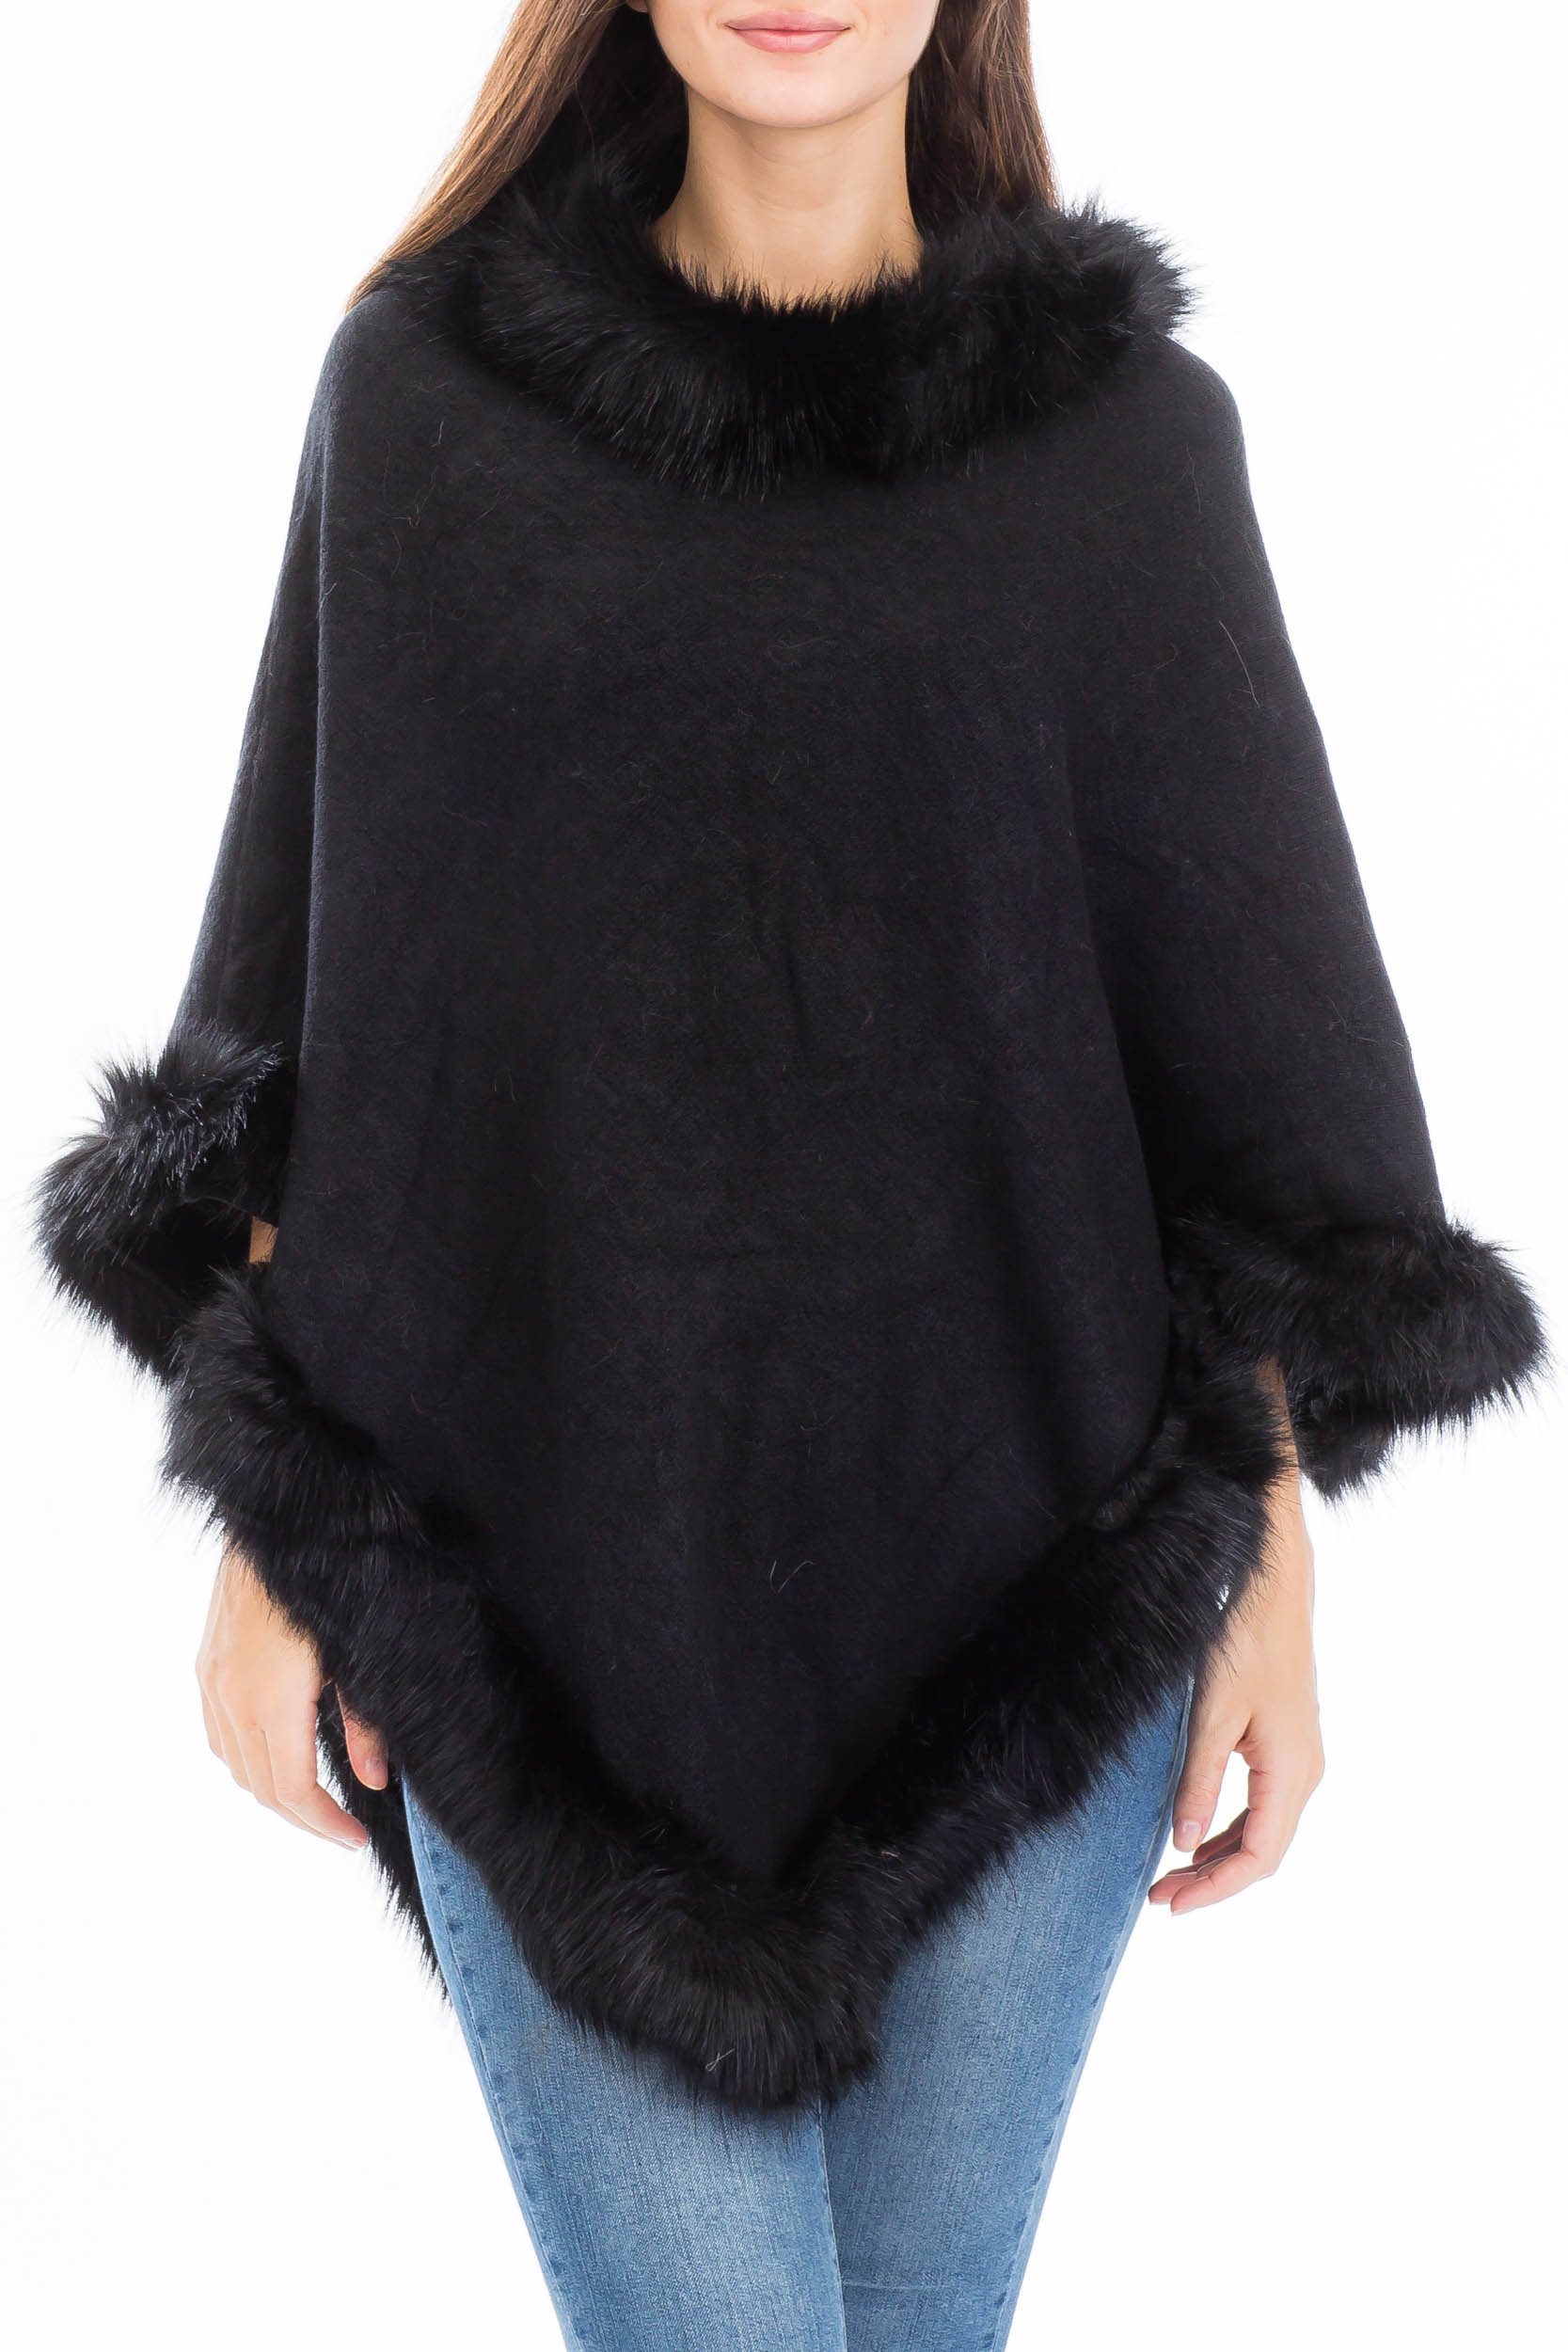 Faux Fur Detailed Hem Luxury Poncho